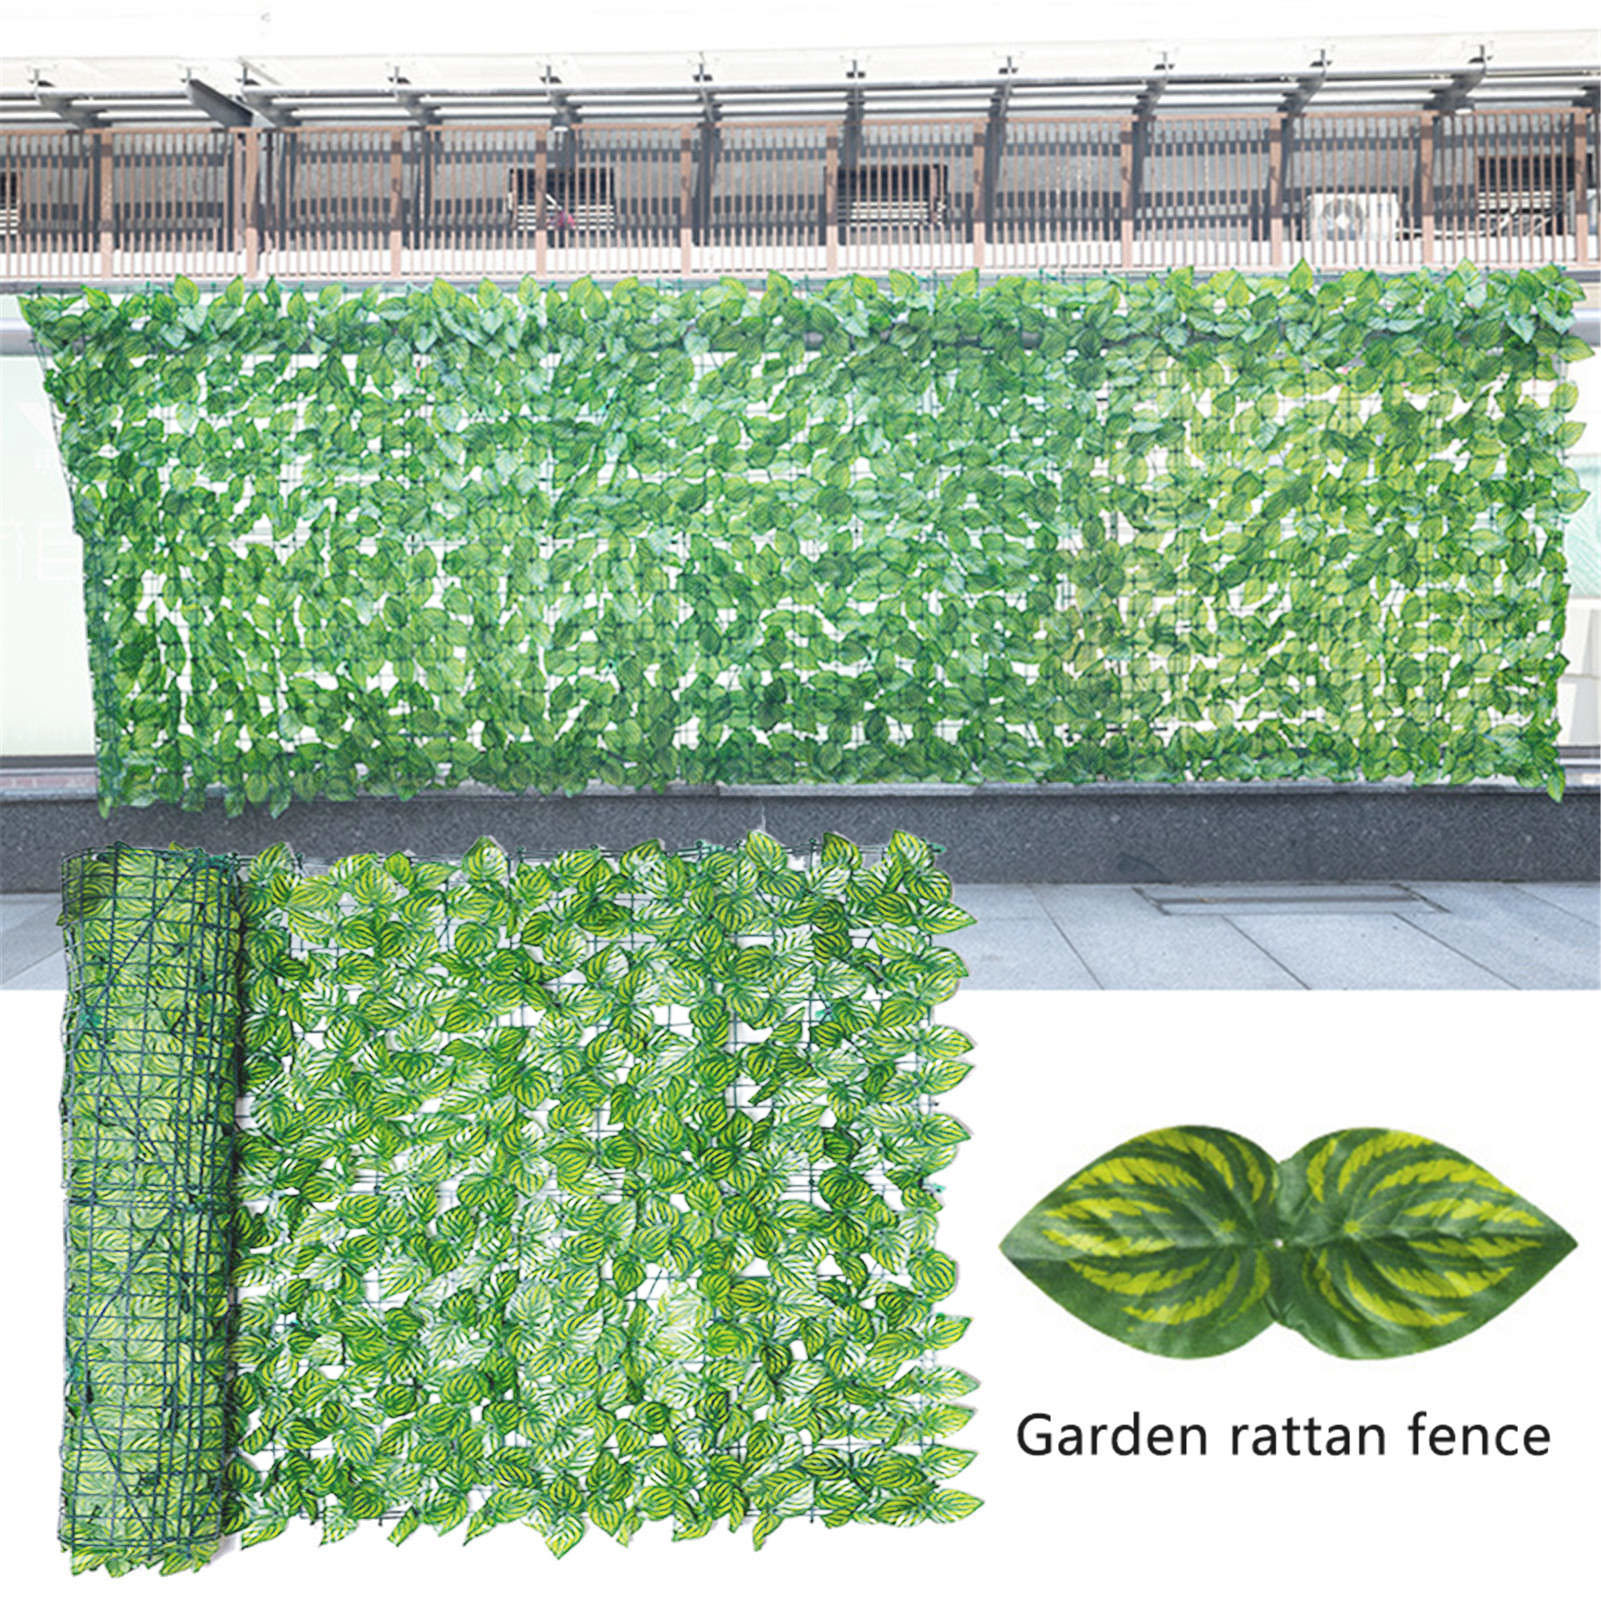 Artificial Ivy Privacy Fence Screen UV Fade Protected Privacy Hedging Wall Landscaping Garden Fence Balcony Screen 0.5x1m/0.5x3m